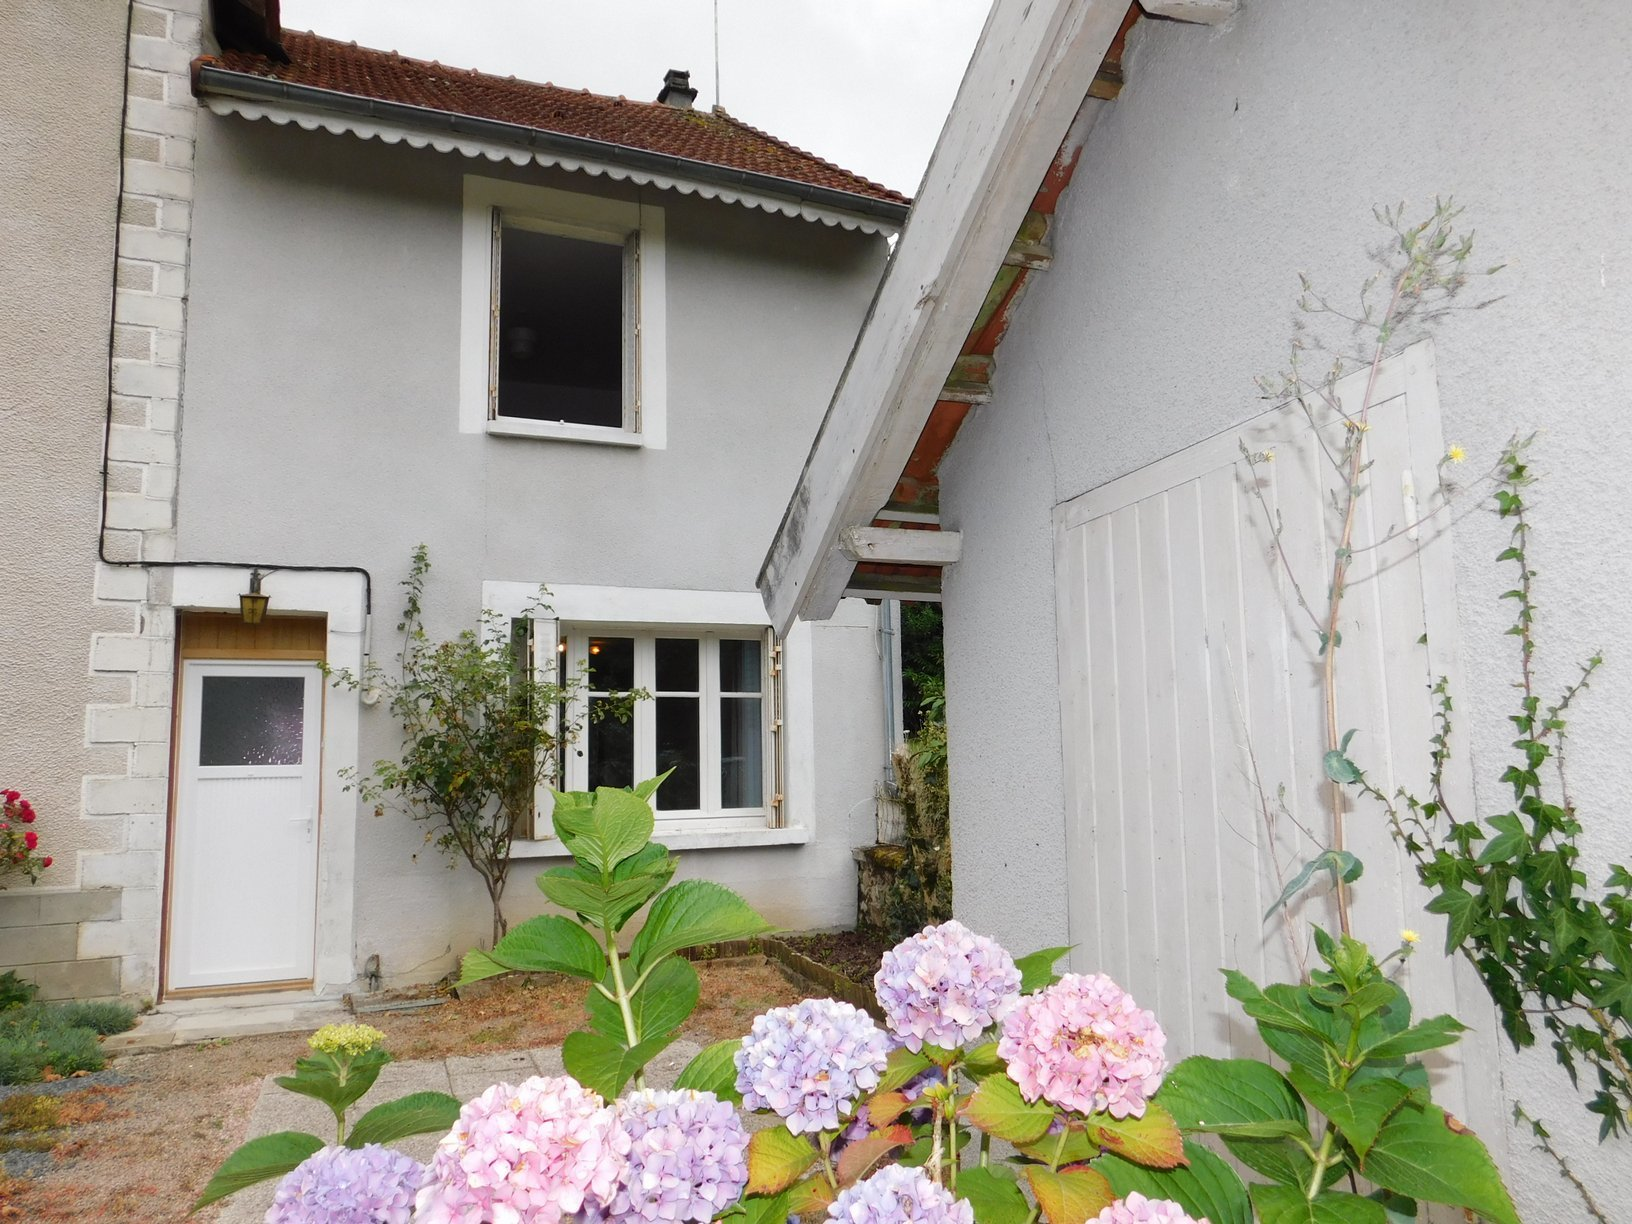 Renovated village house with garden in National Park